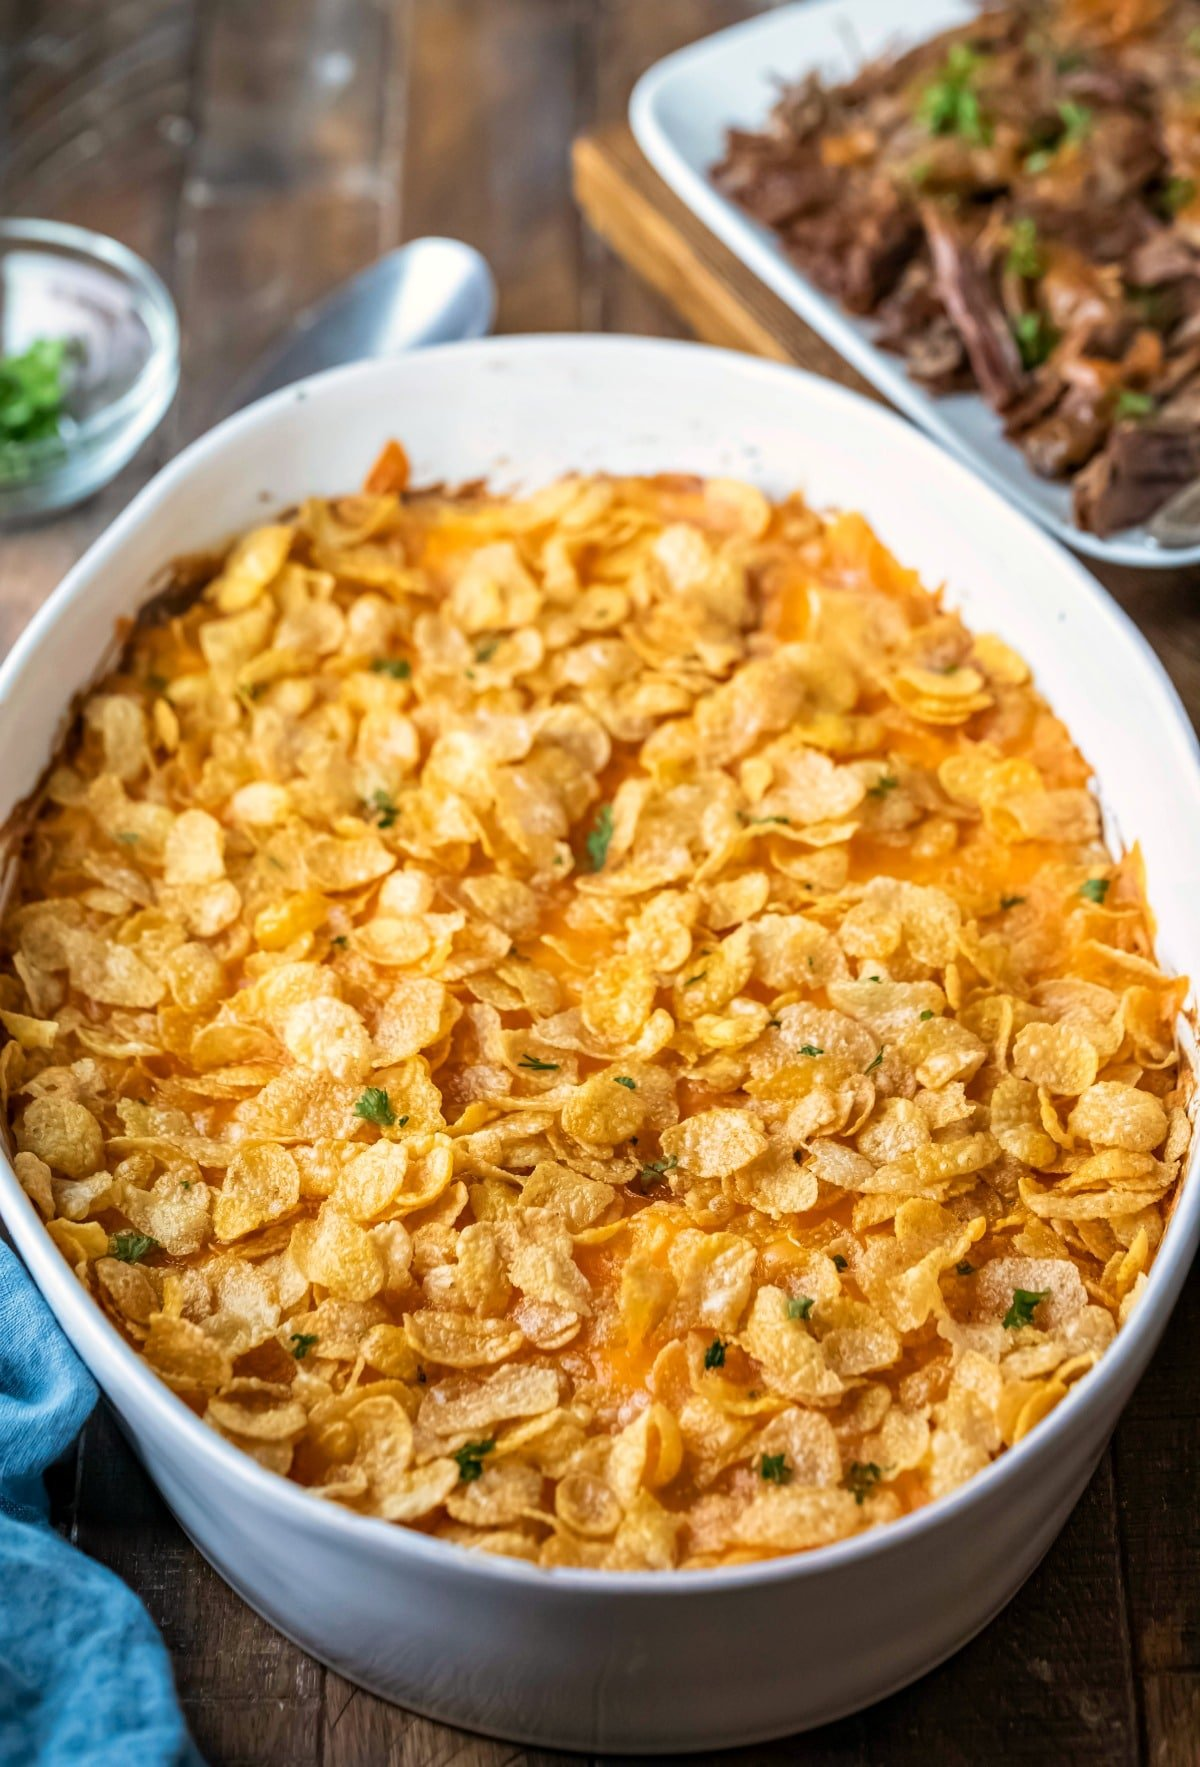 Funeral potatoes topped with cornflakes and parsley